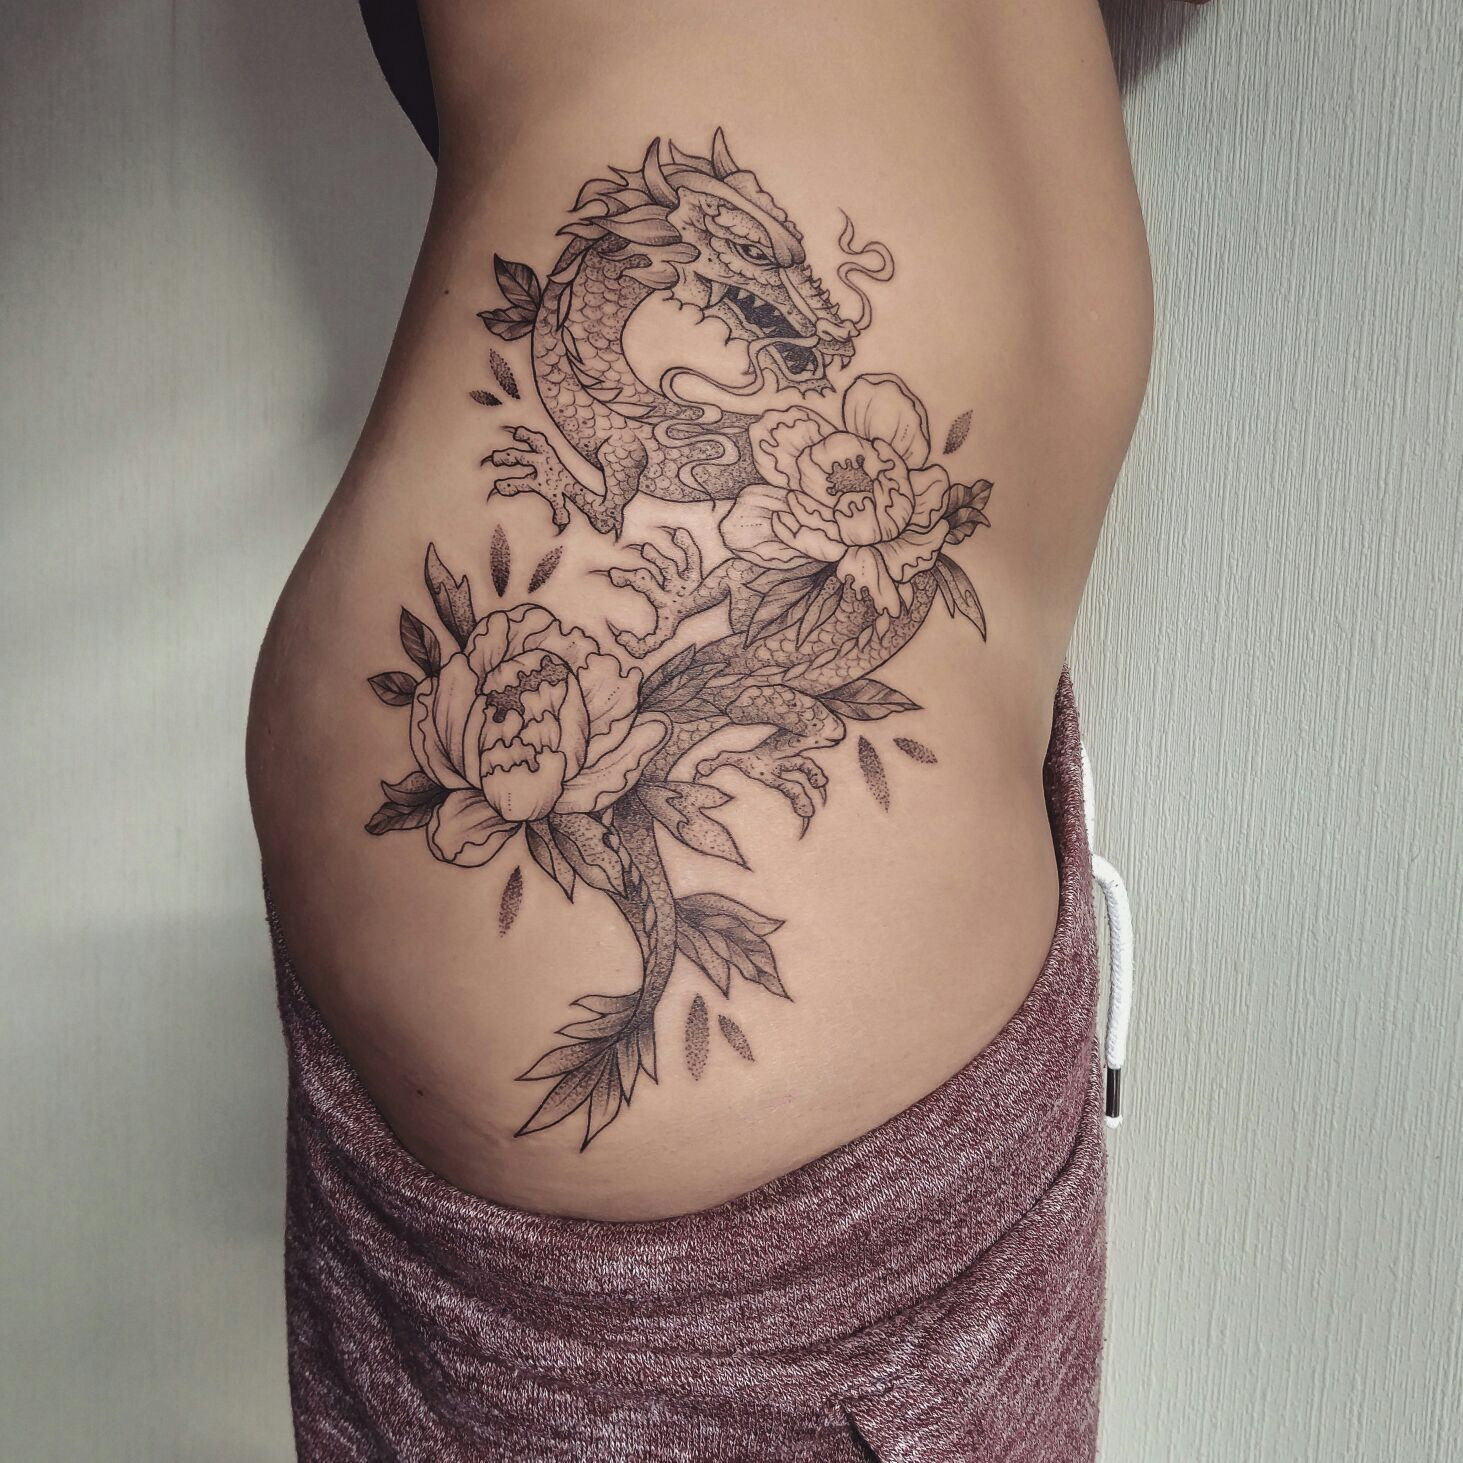 Girl Thigh Tattoos Image By Moon On Create Your Own Character In 2020 Hip Tattoos Women Dragon Sleeve Tattoos